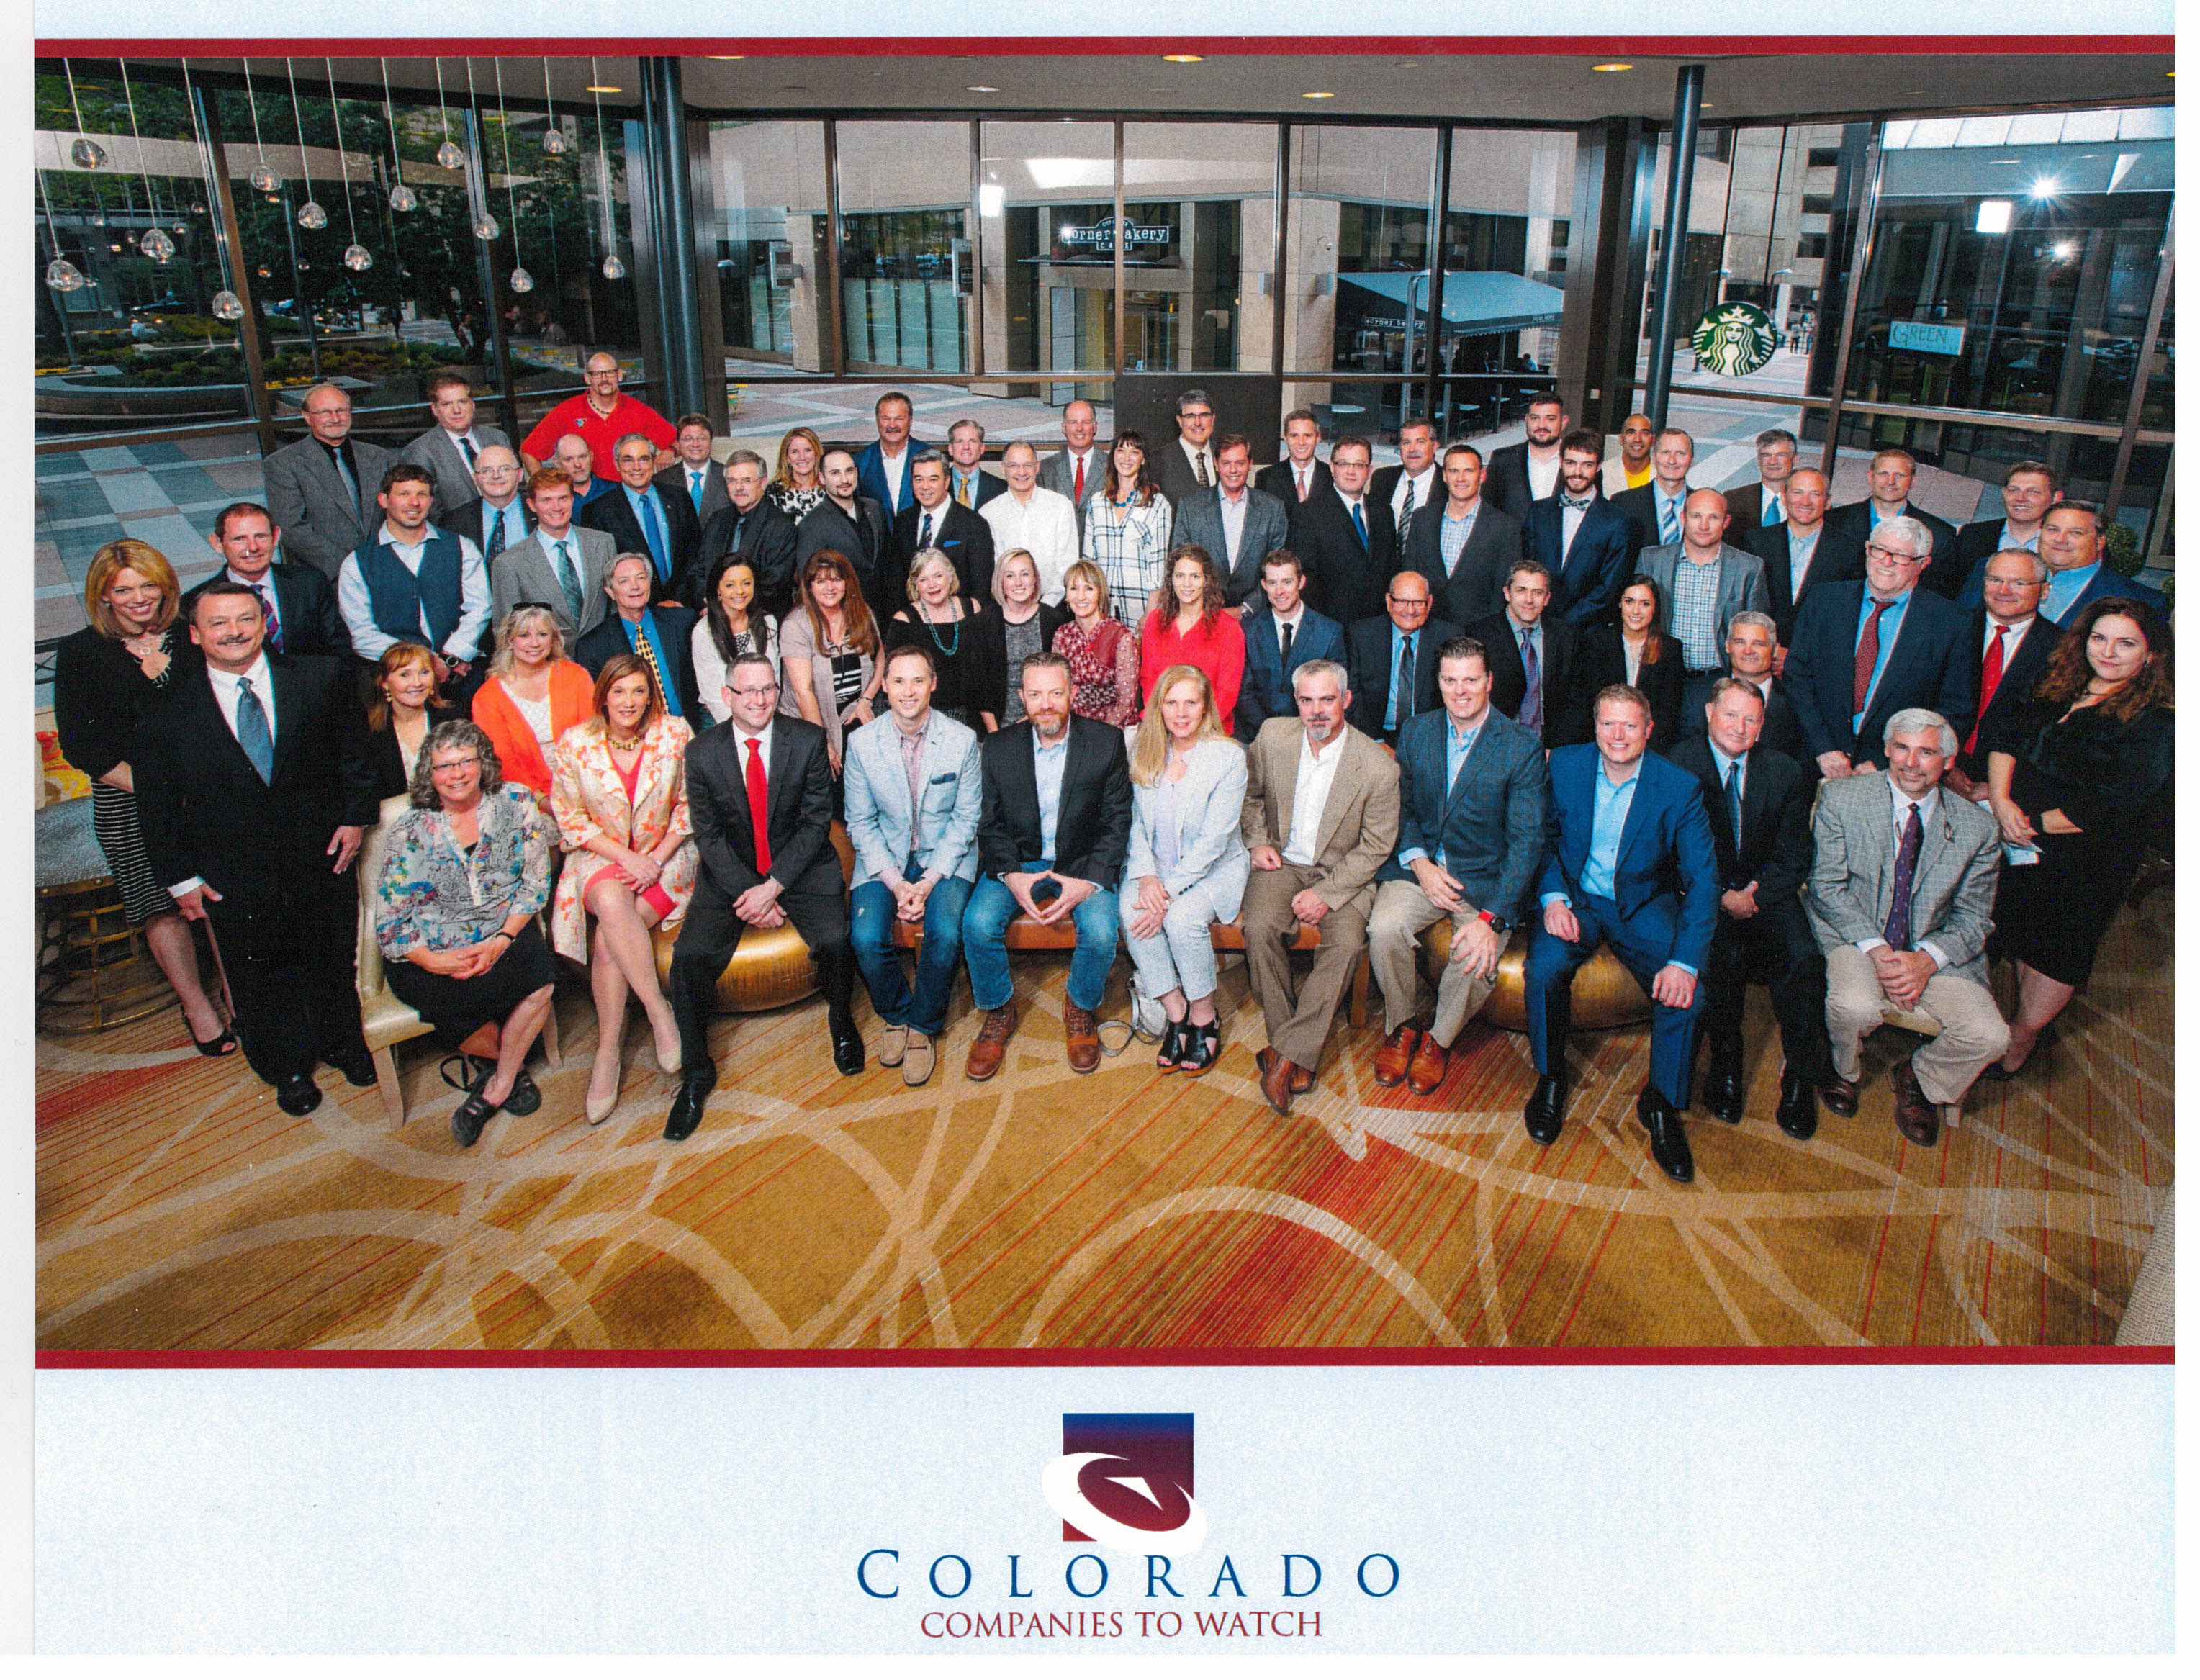 2016 Colorado Companies to Watch Winners